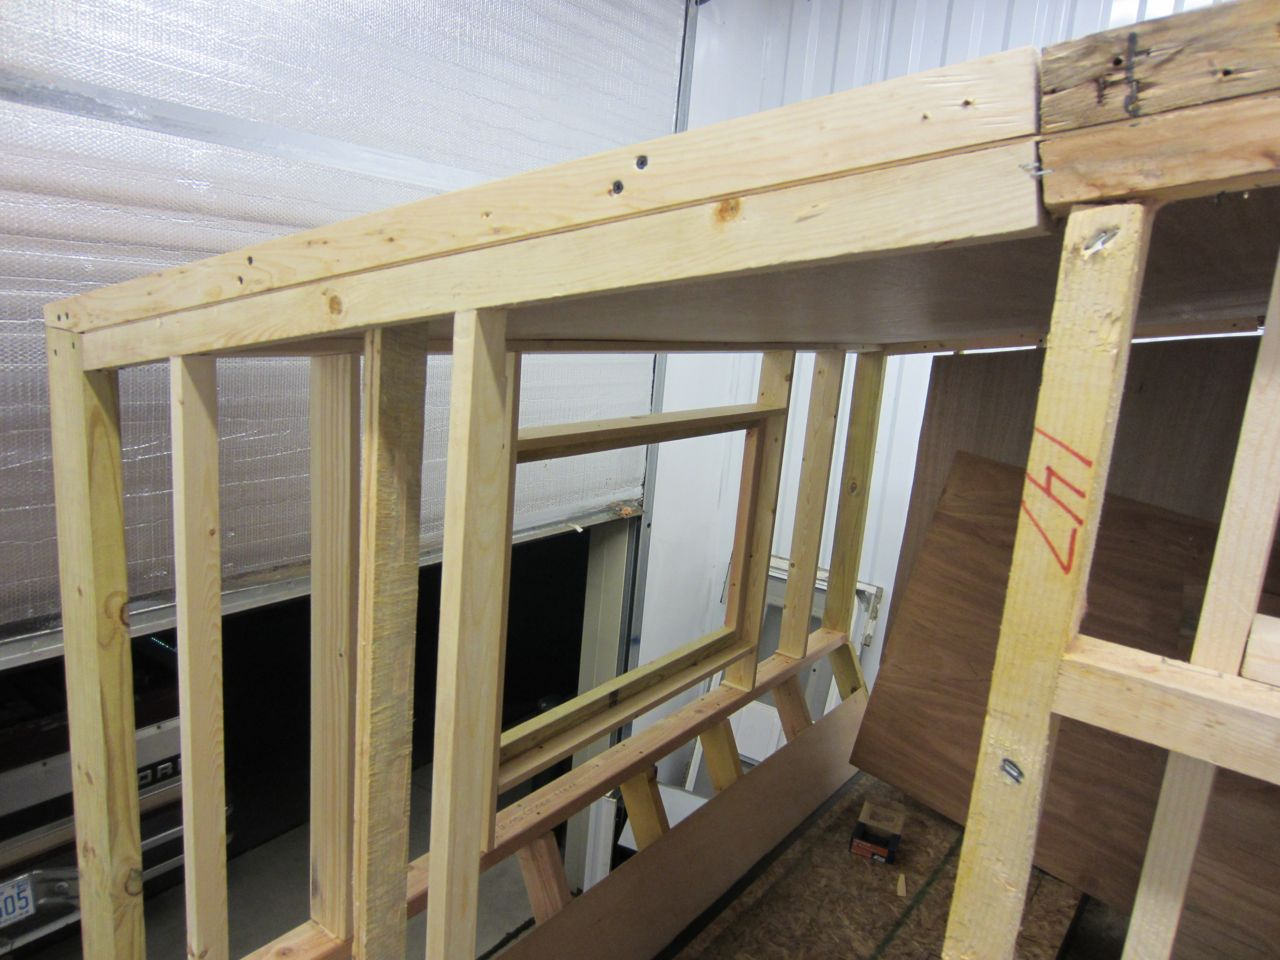 Side view of the roof frame. The luan is in-between the interior and exterior roof frame.